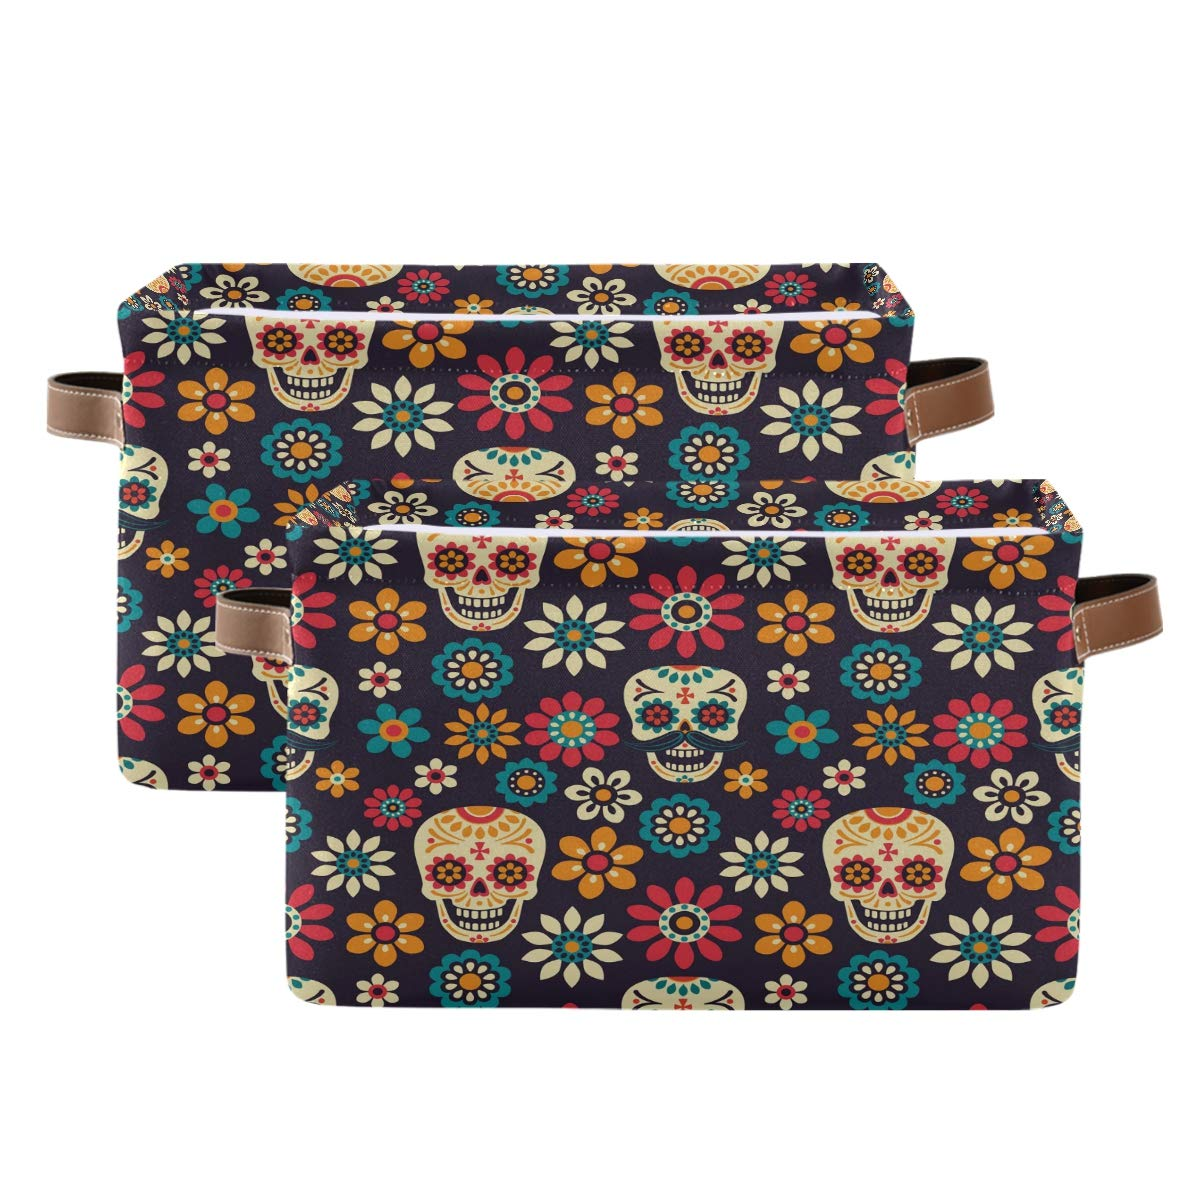 WXLIFE Storage Basket Bins Mexican Floral Sugar Skull Stor Sales Los Angeles Mall of SALE items from new works Large